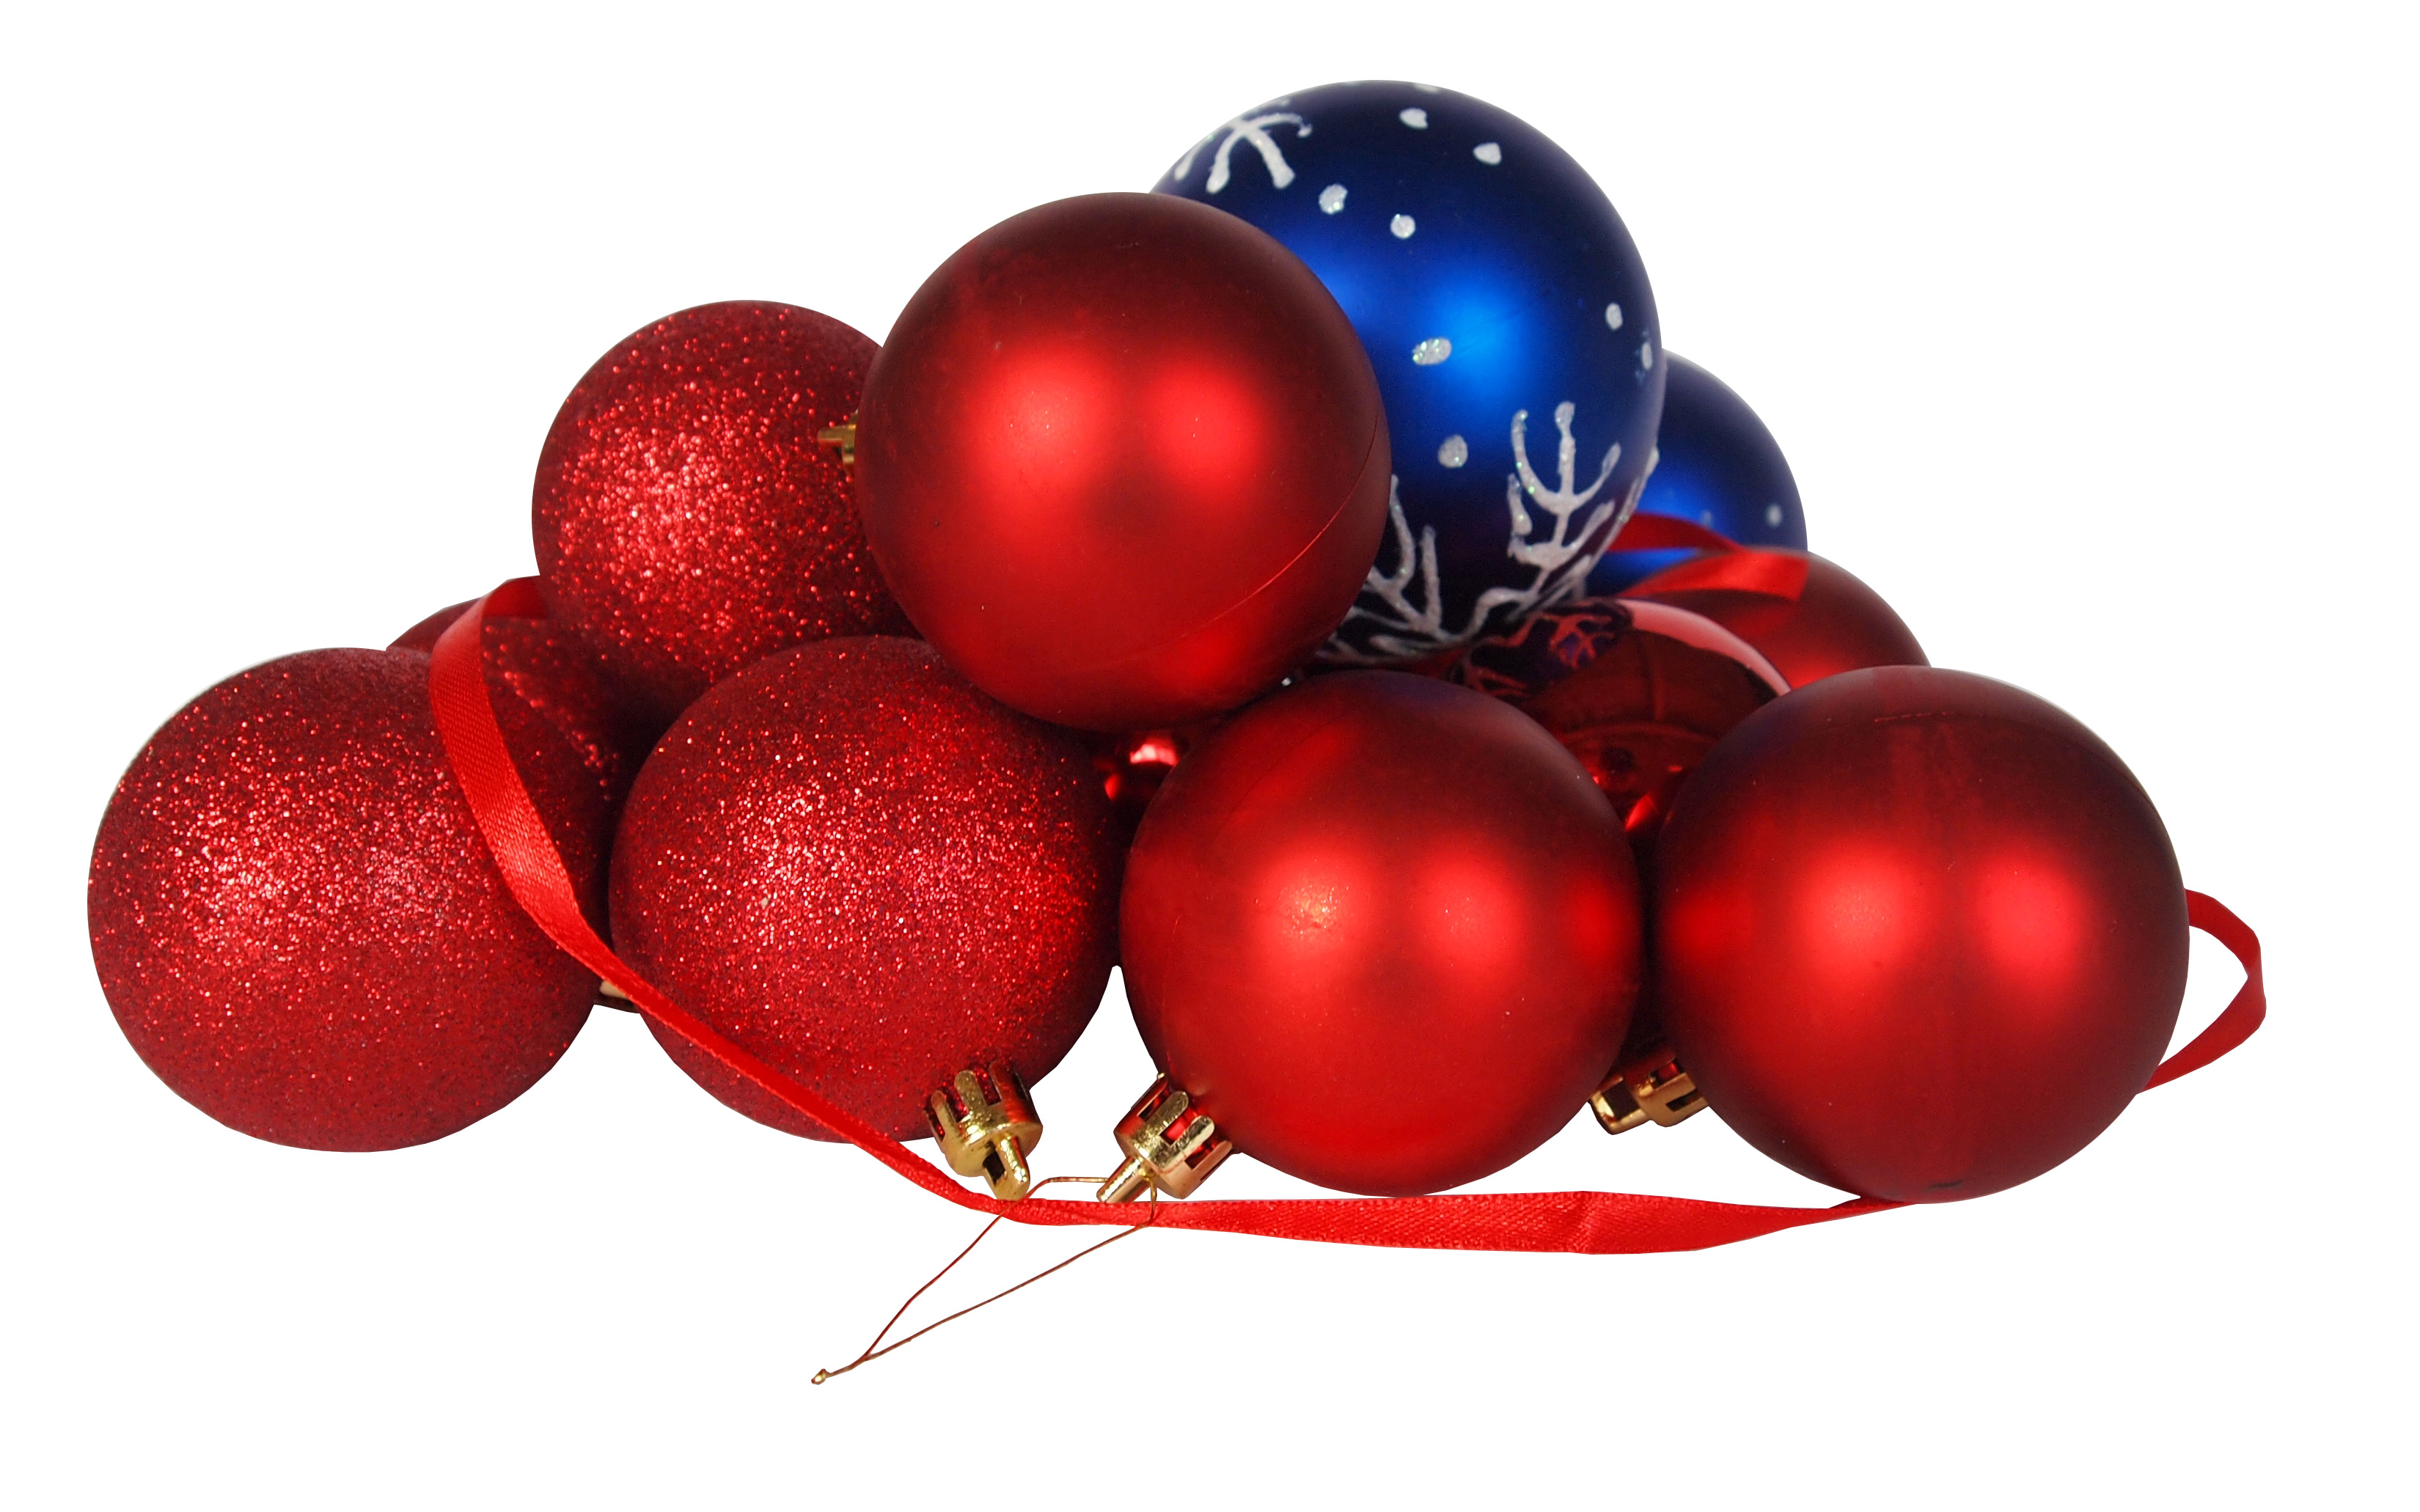 10 christmas ornaments pics free cliparts that you can download to you ...